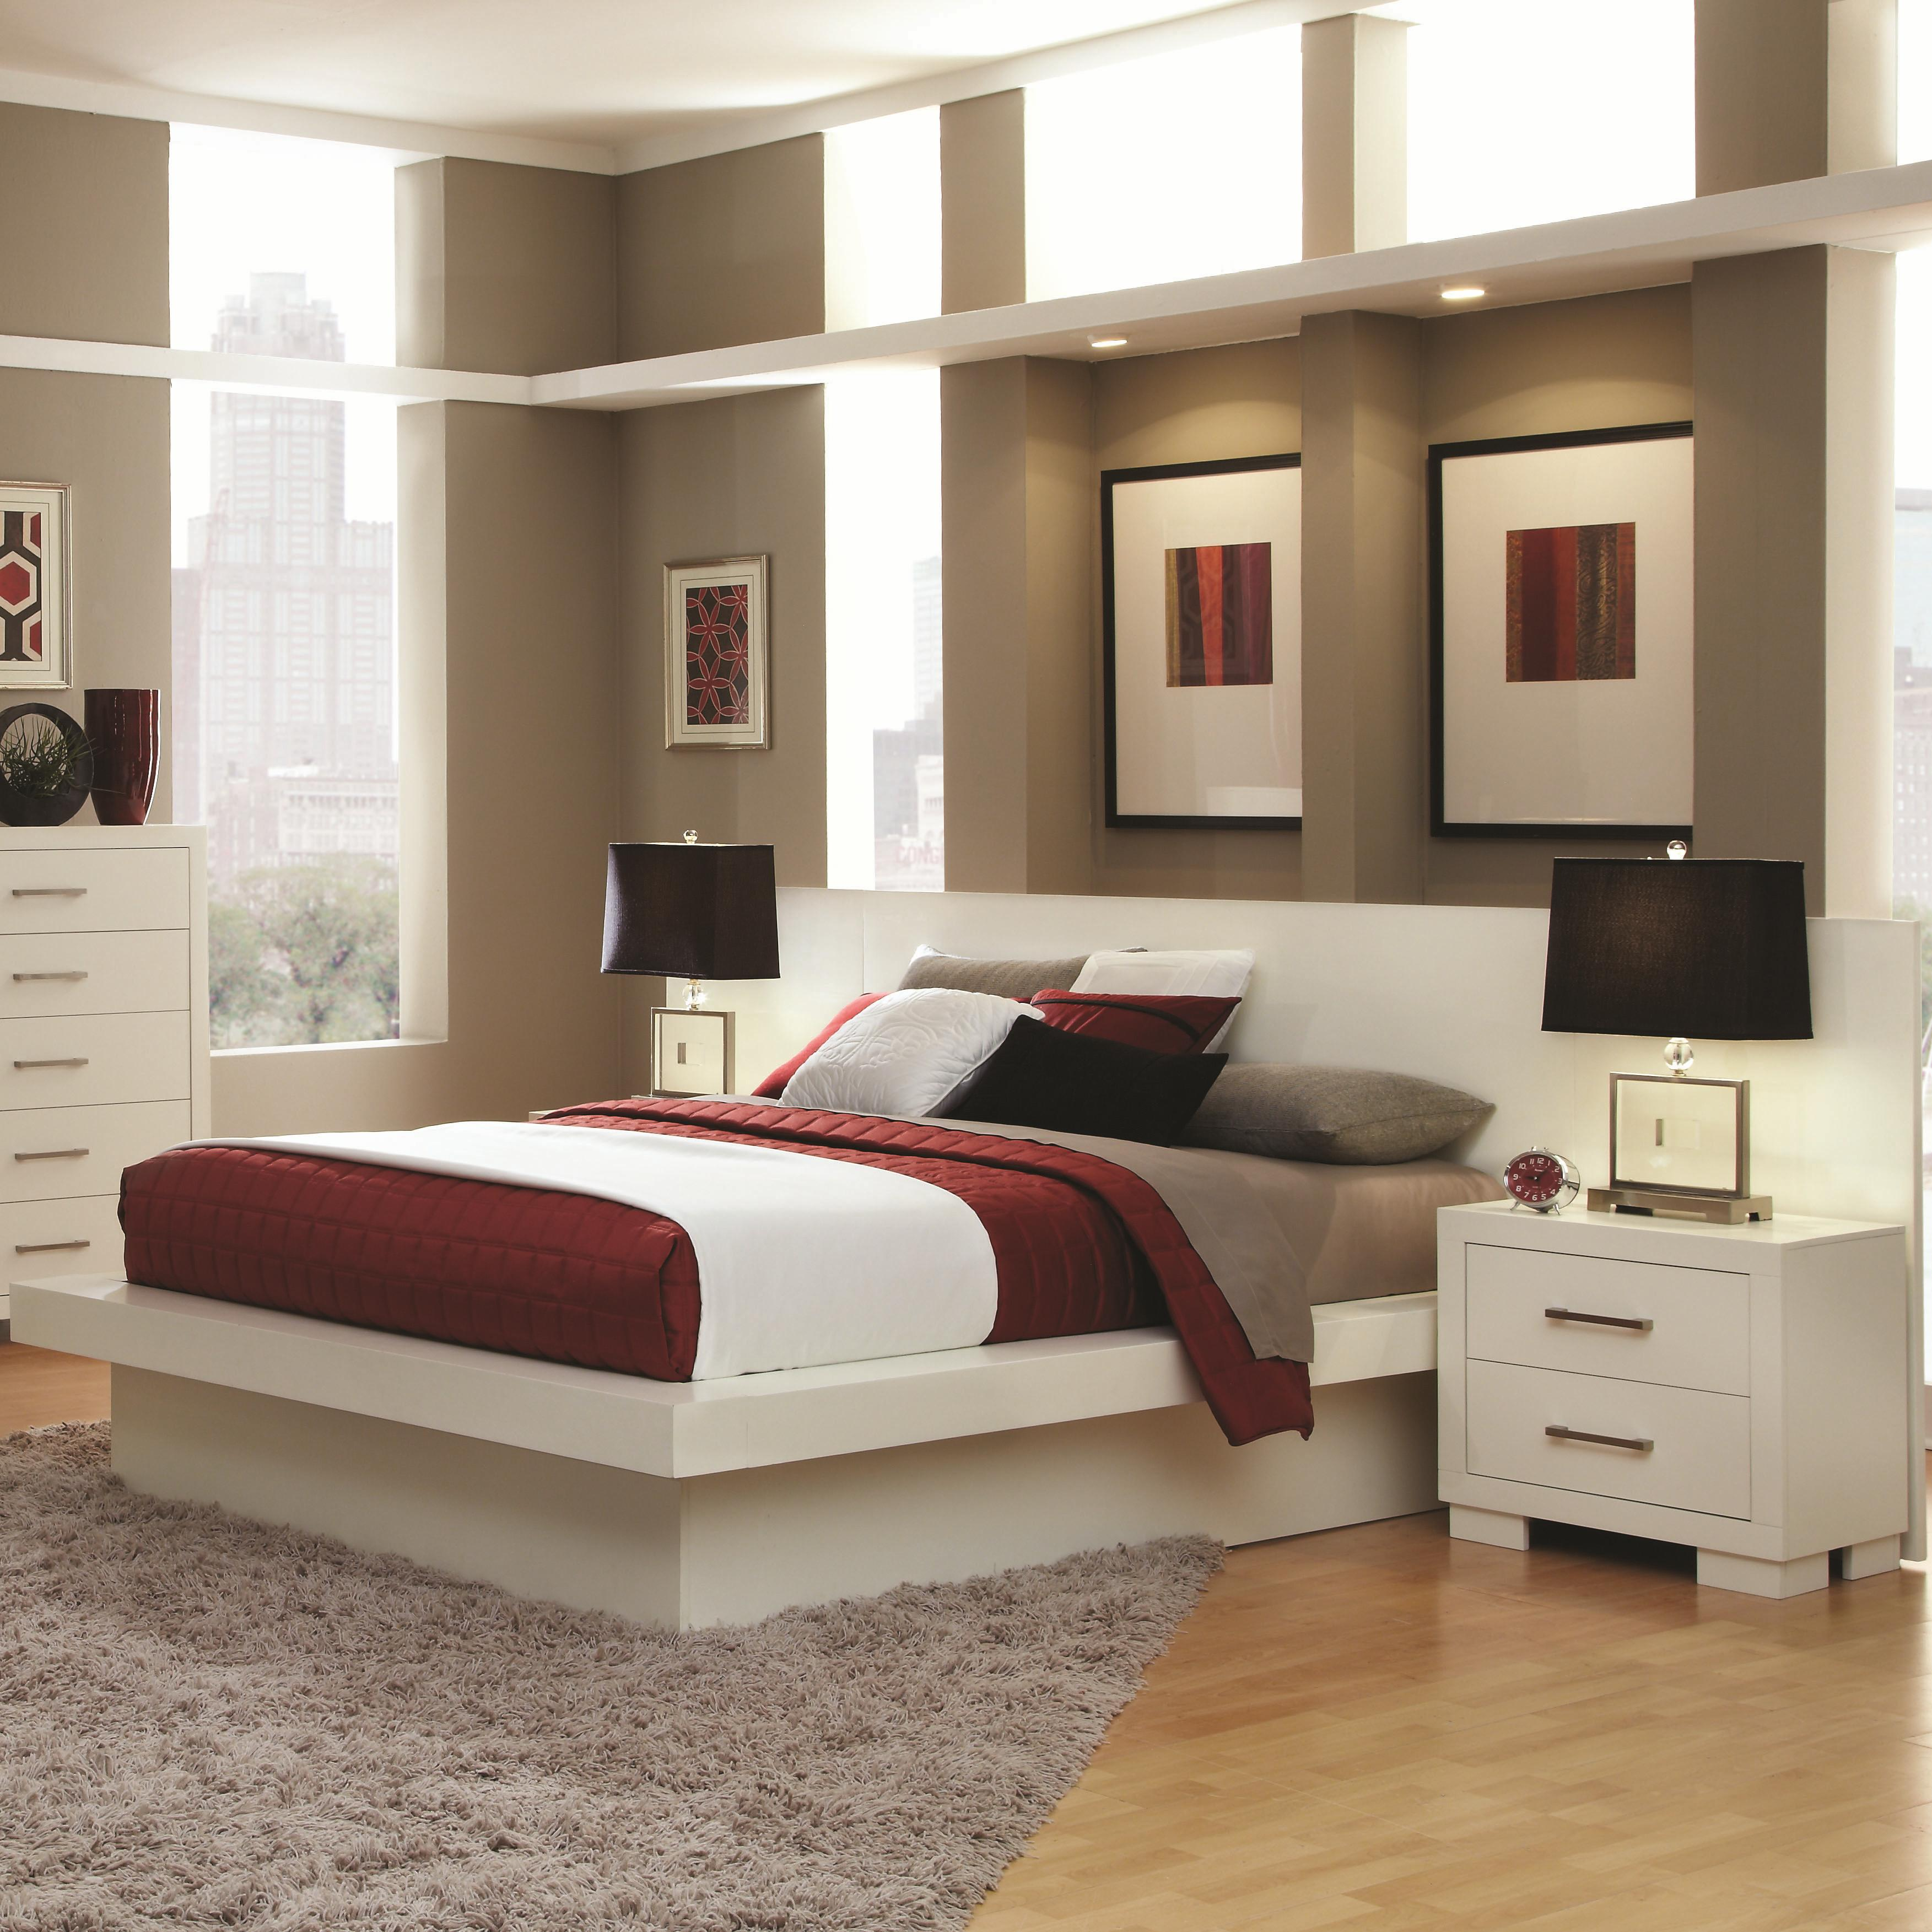 Coaster Jessica King Bed - Item Number: 202990KE